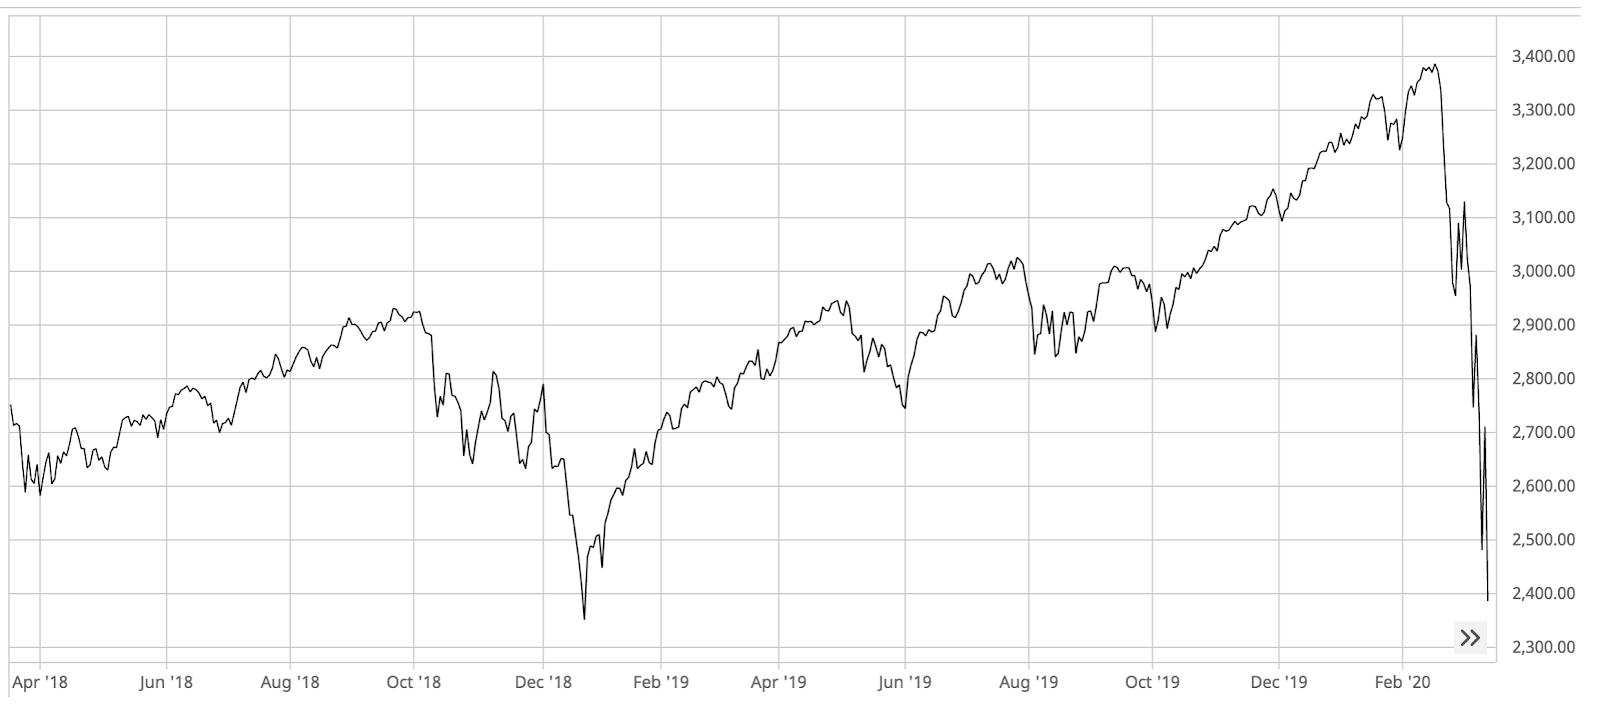 3 Year graph of the S&P 500 between March 2018 and March 2020